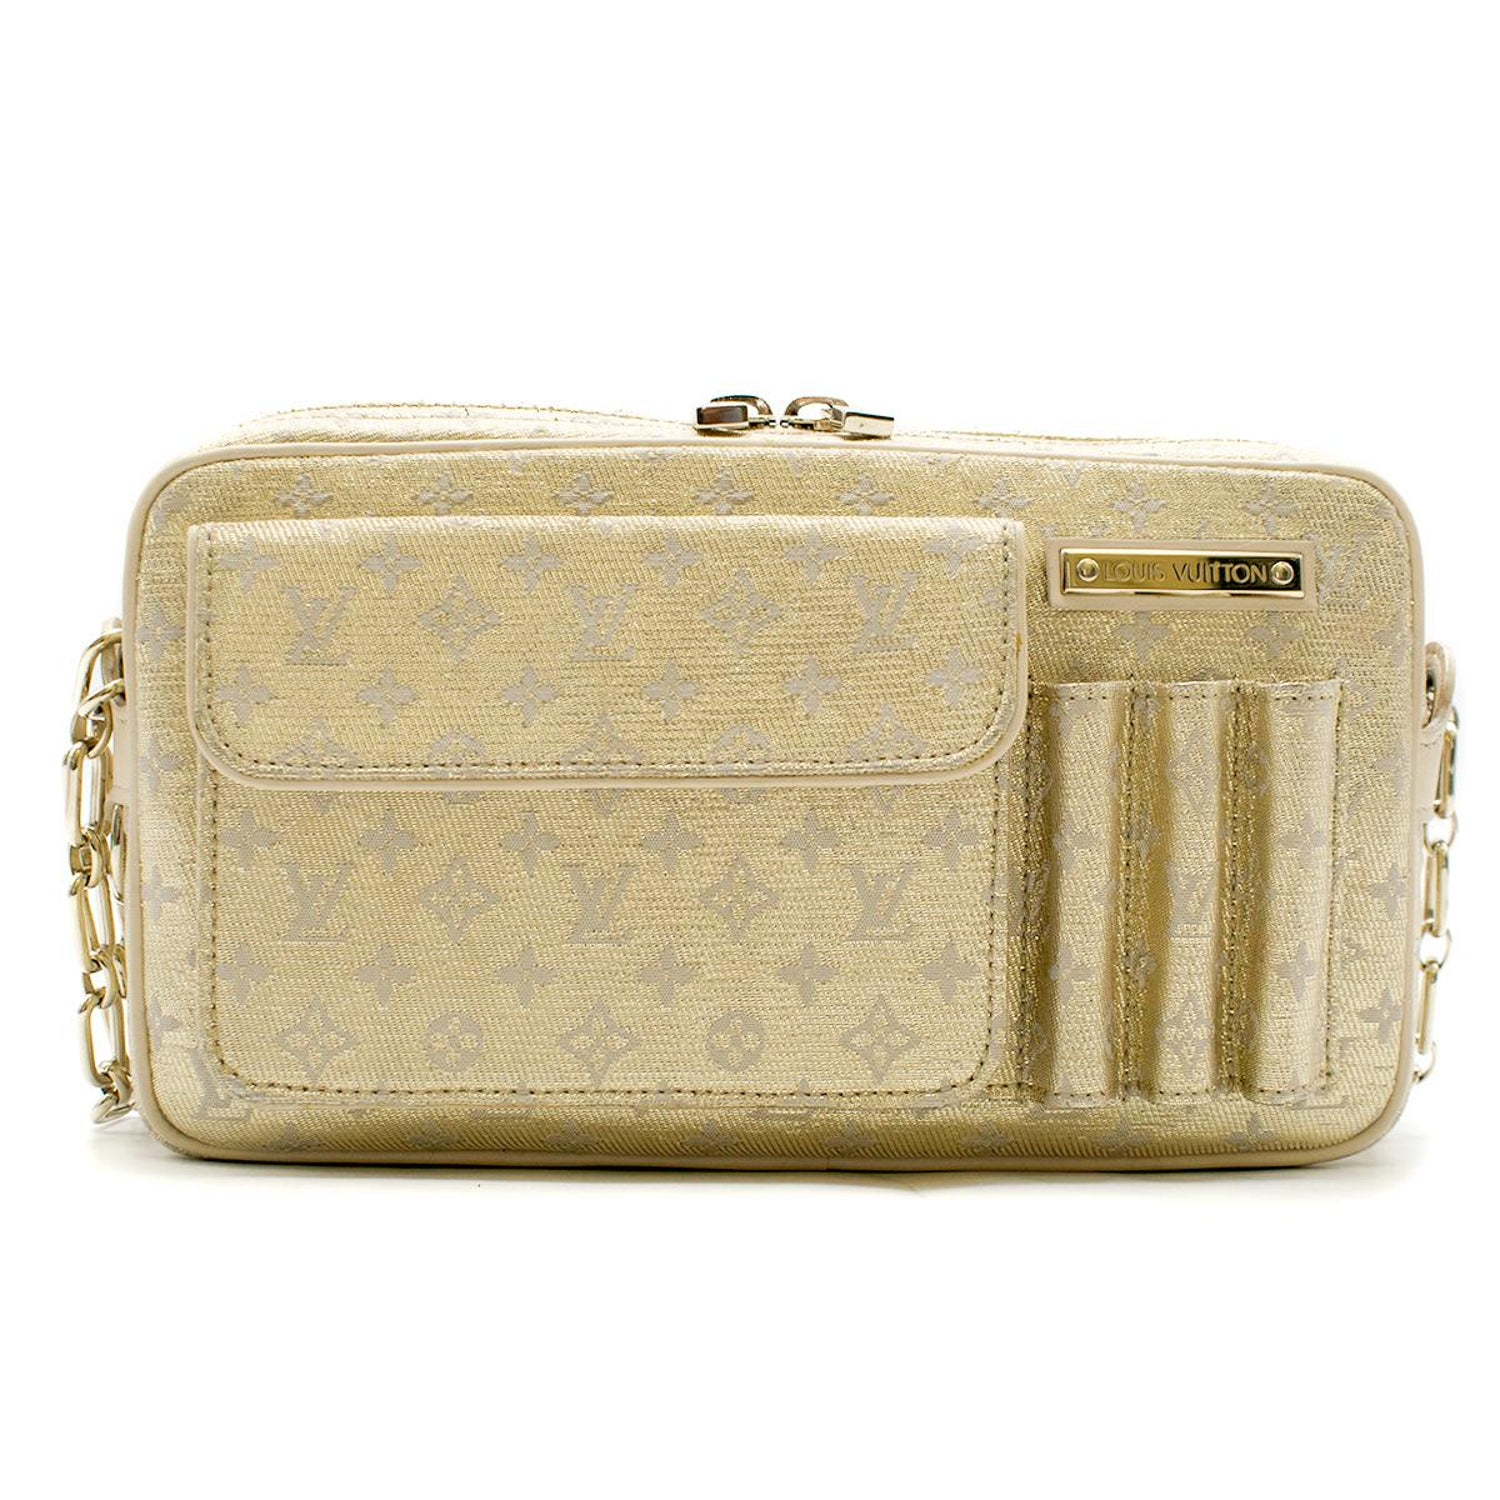 0632e6ce97469 Louis Vuitton Small Gold Limited Edition Monogram Bag at 1stdibs